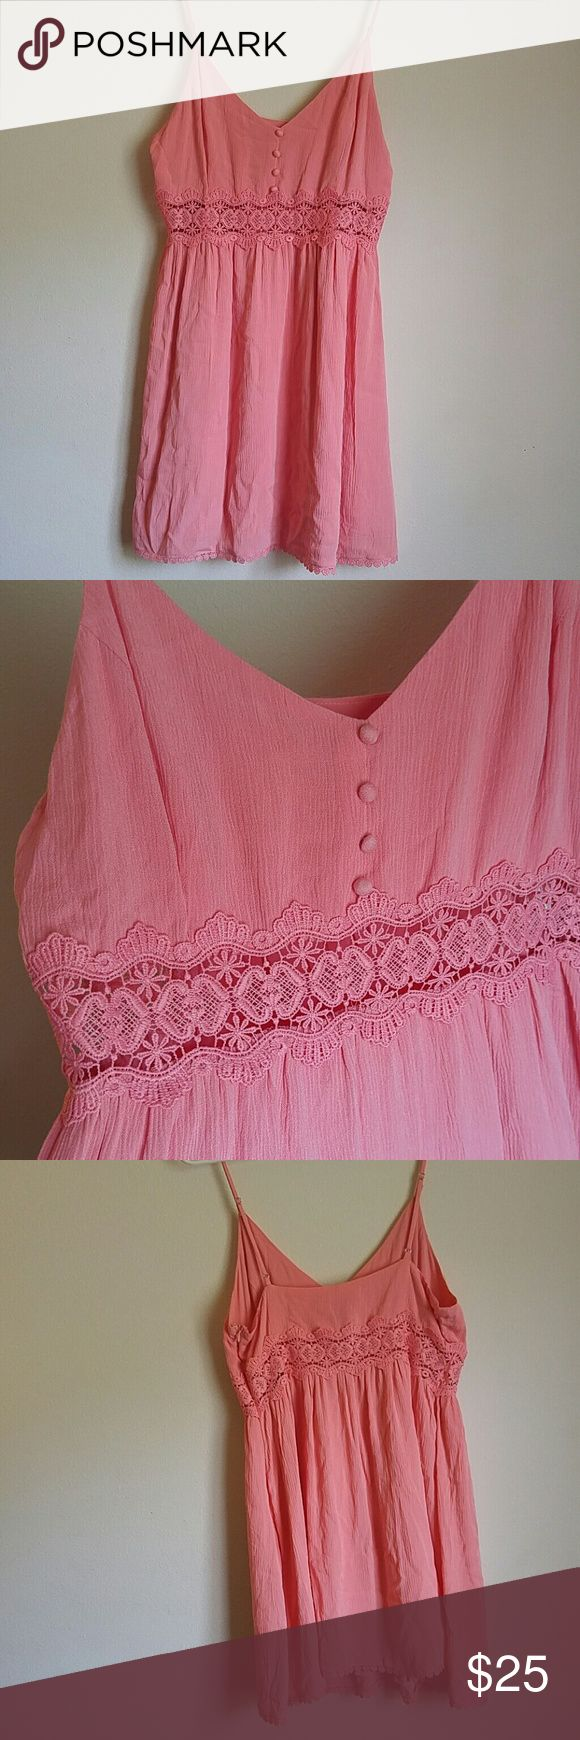 Forever 21 Size Large Coral Pink strappy Dress Beautiful preowned condition. Very good condition. Lovely see through lace crochet wait detailing. Really beautiful coral pink color. Size large. Zip up on the side and strap sleeves. Forever 21 Dresses Midi